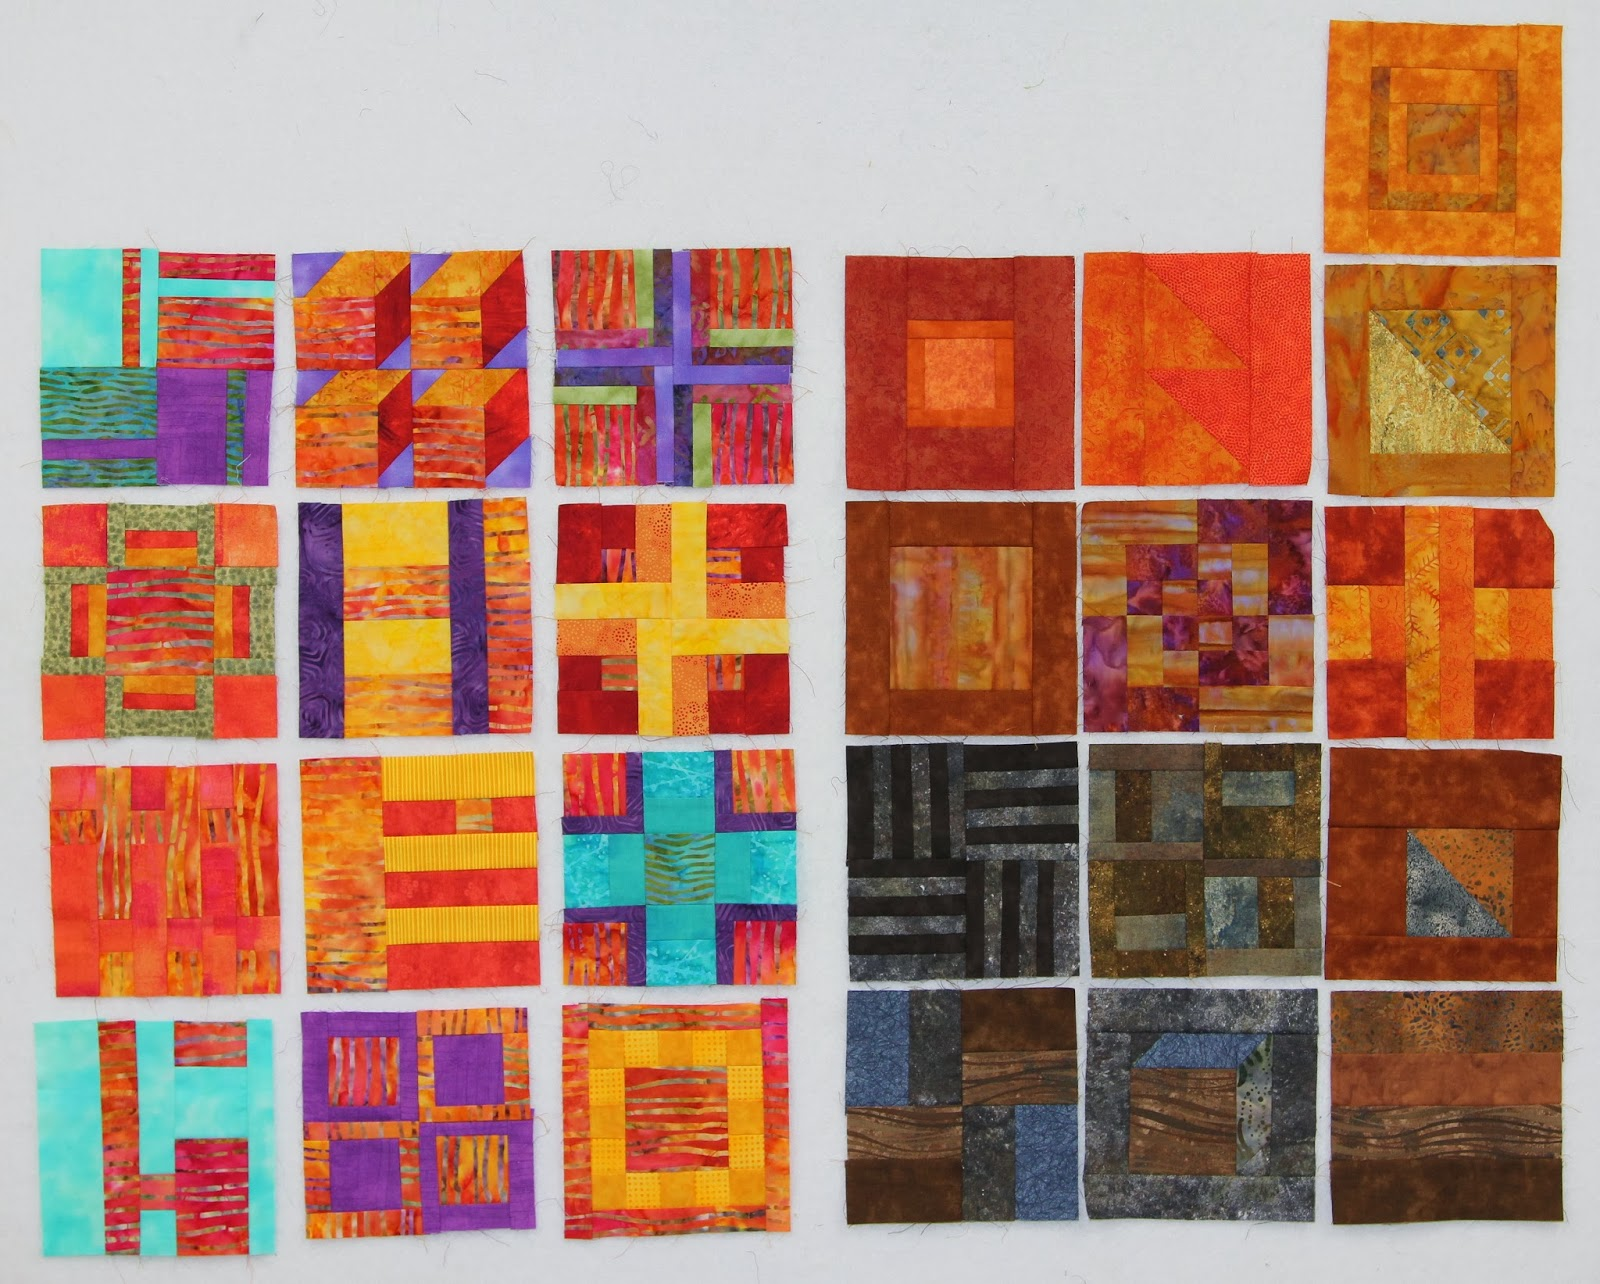 Quilts and paws for Southwest desert color palette